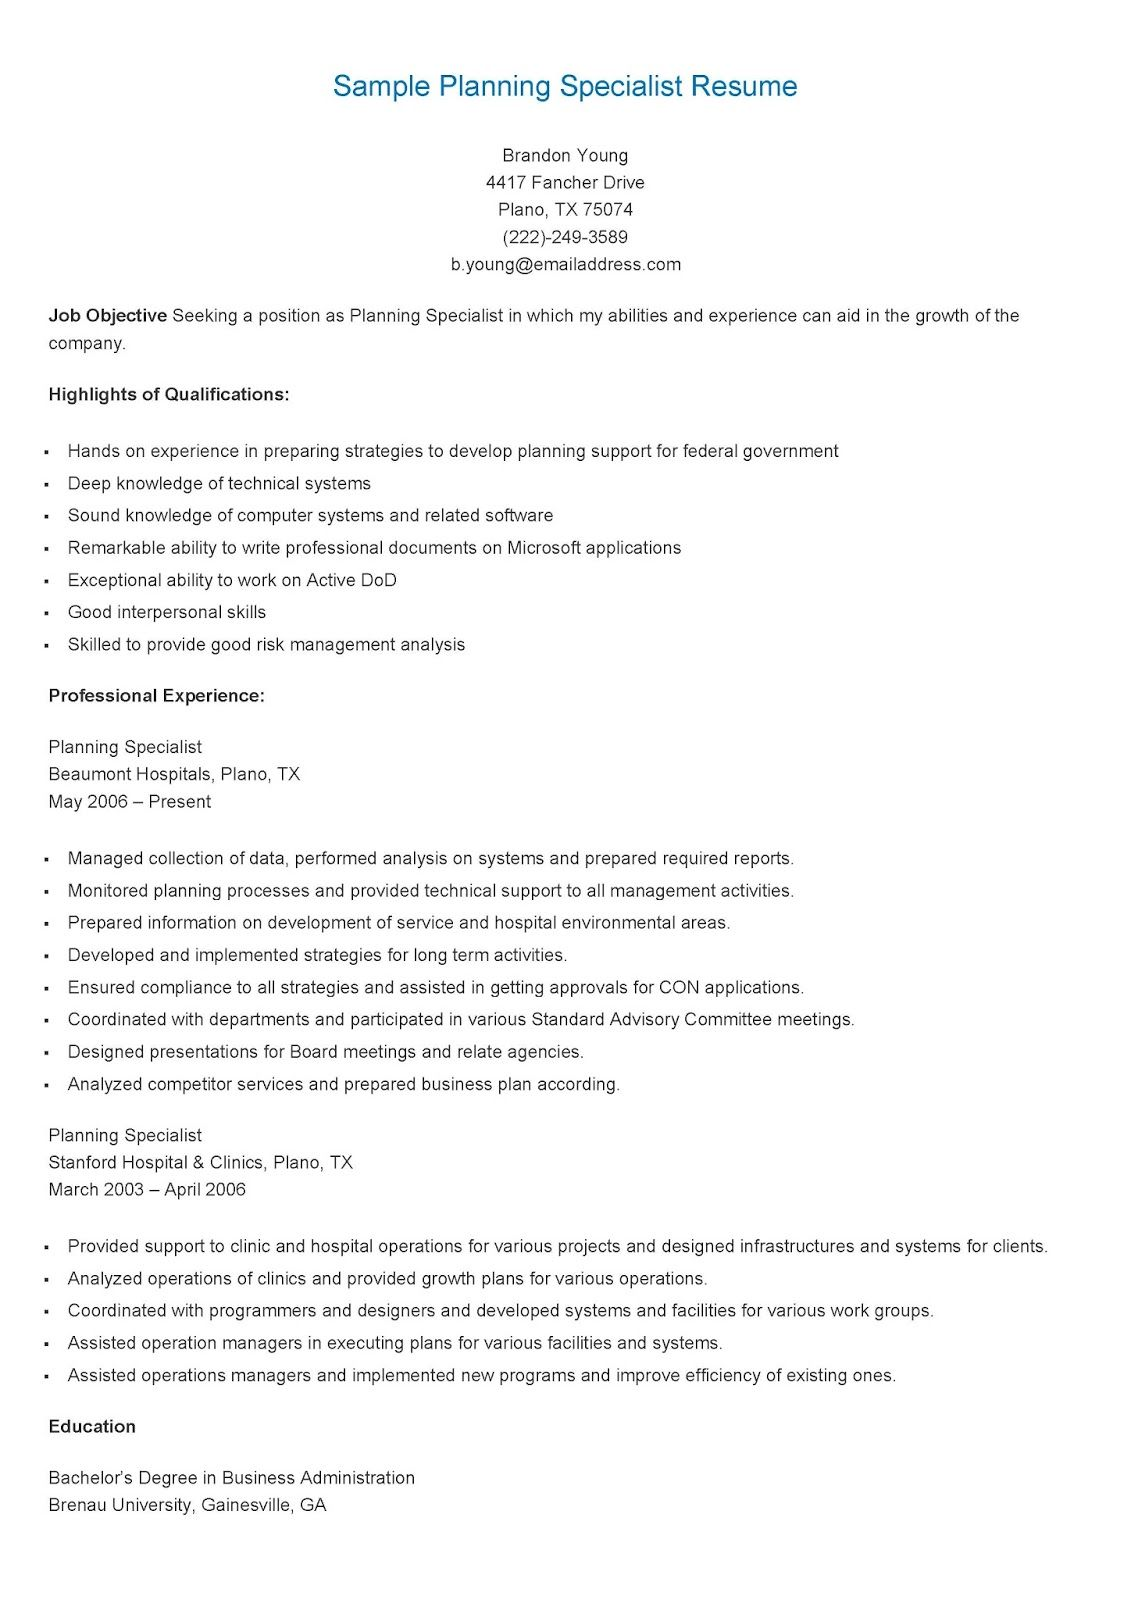 Sample Planning Specialist Resume Resame Pinterest